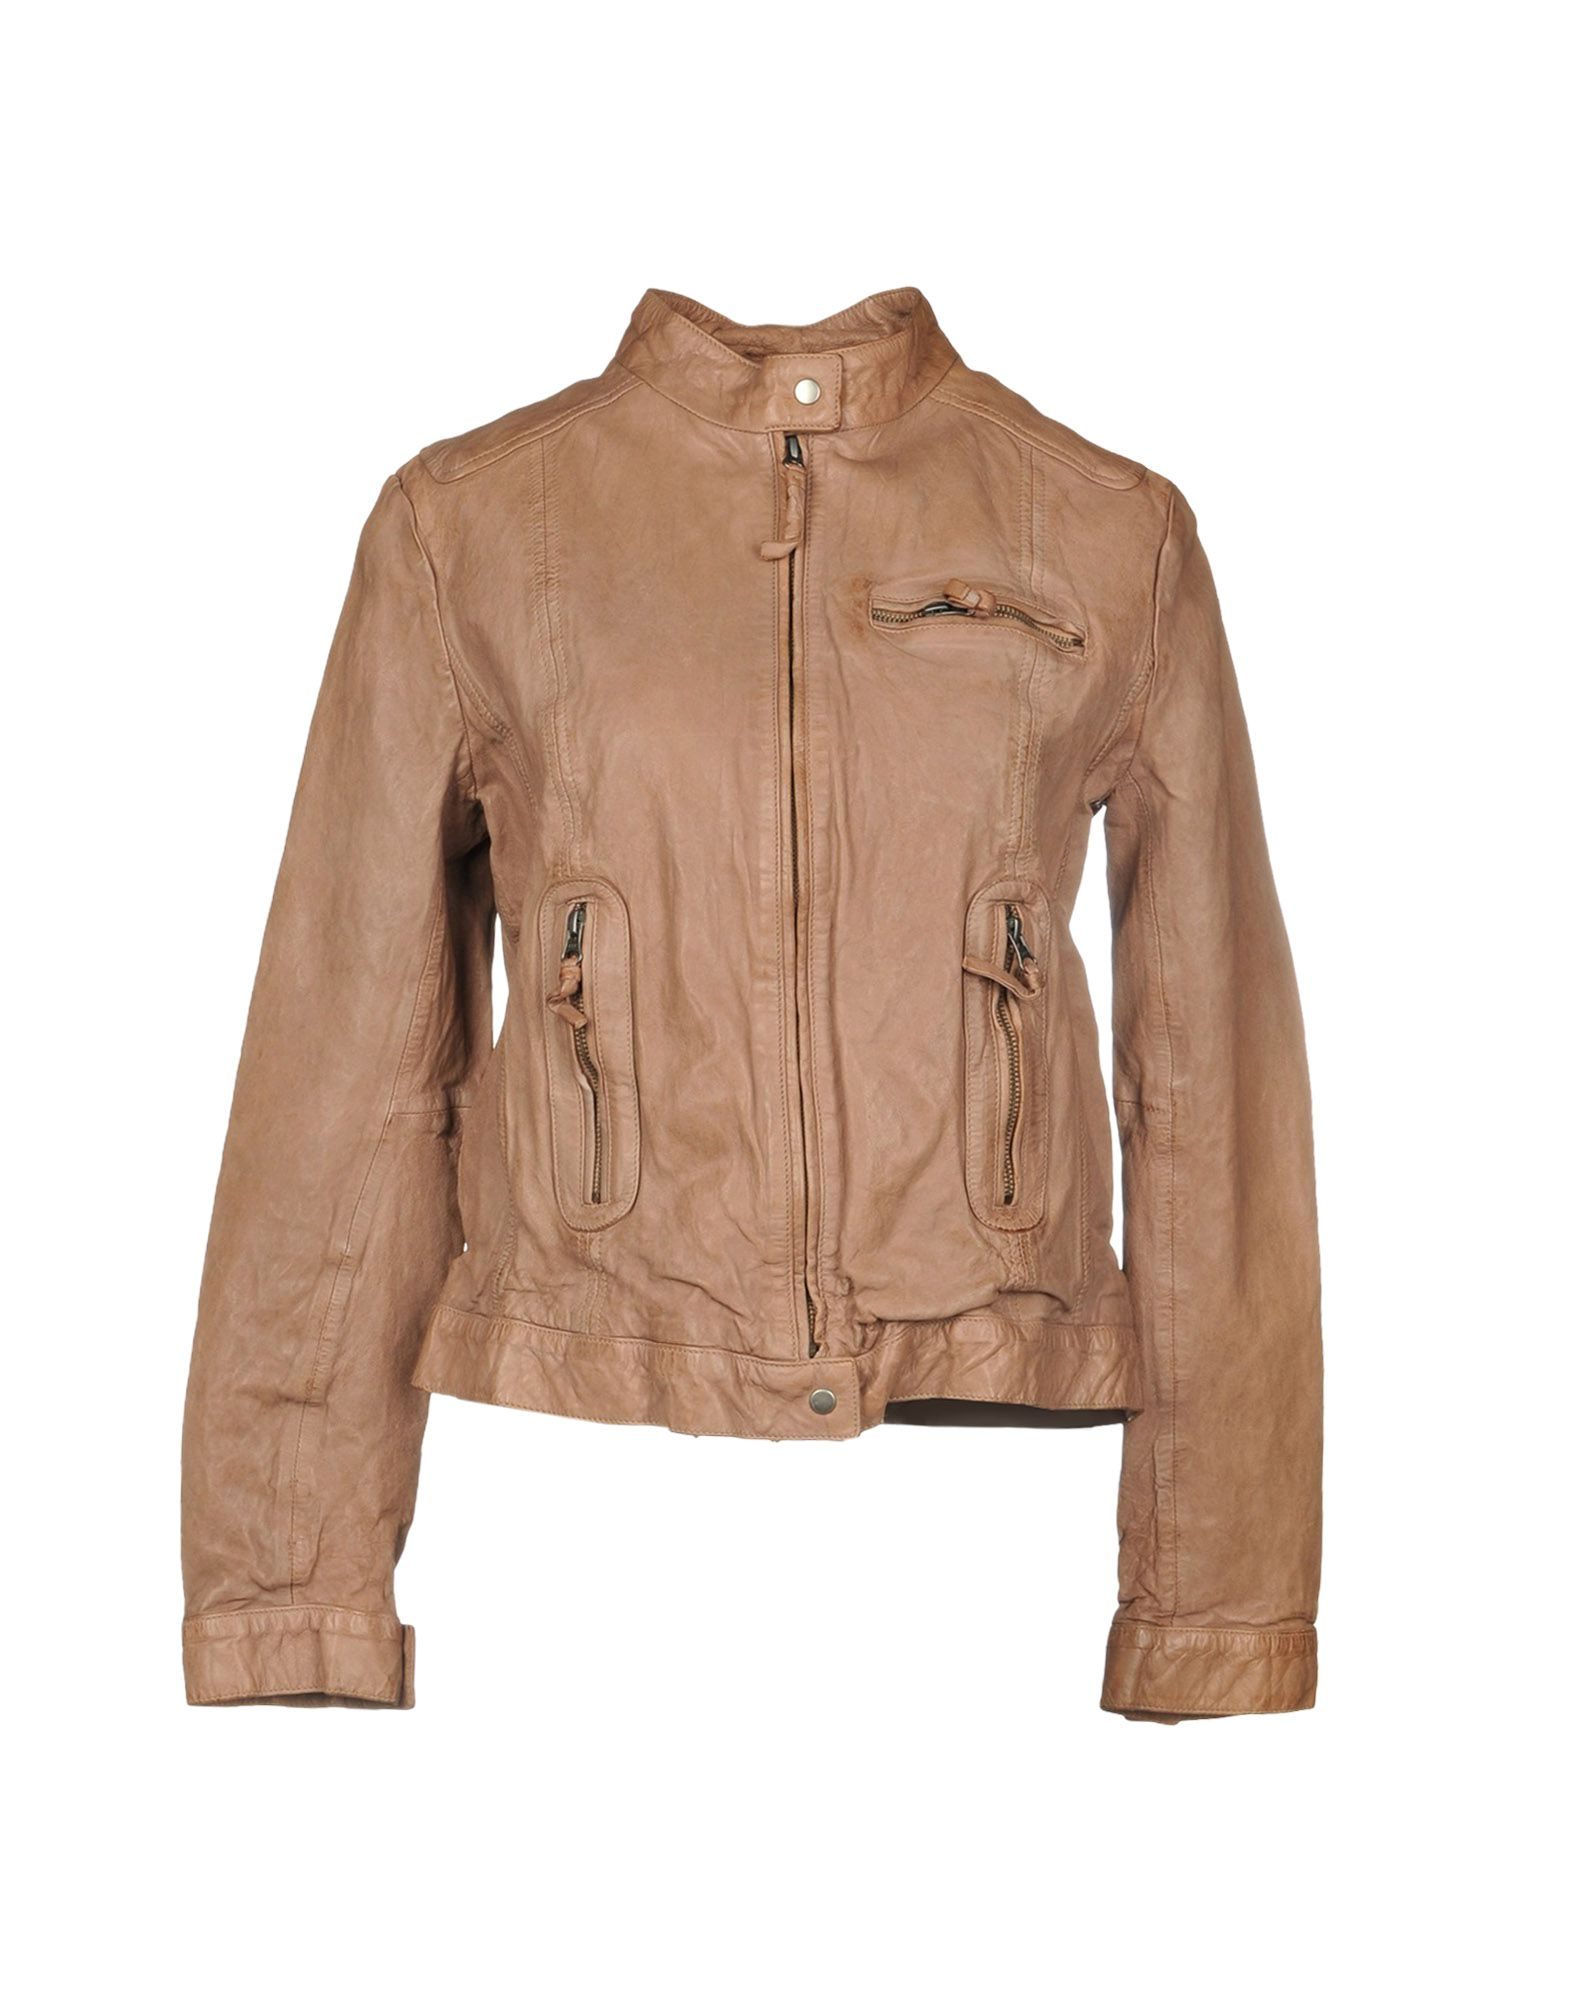 MDK Biker Jacket in Light Brown